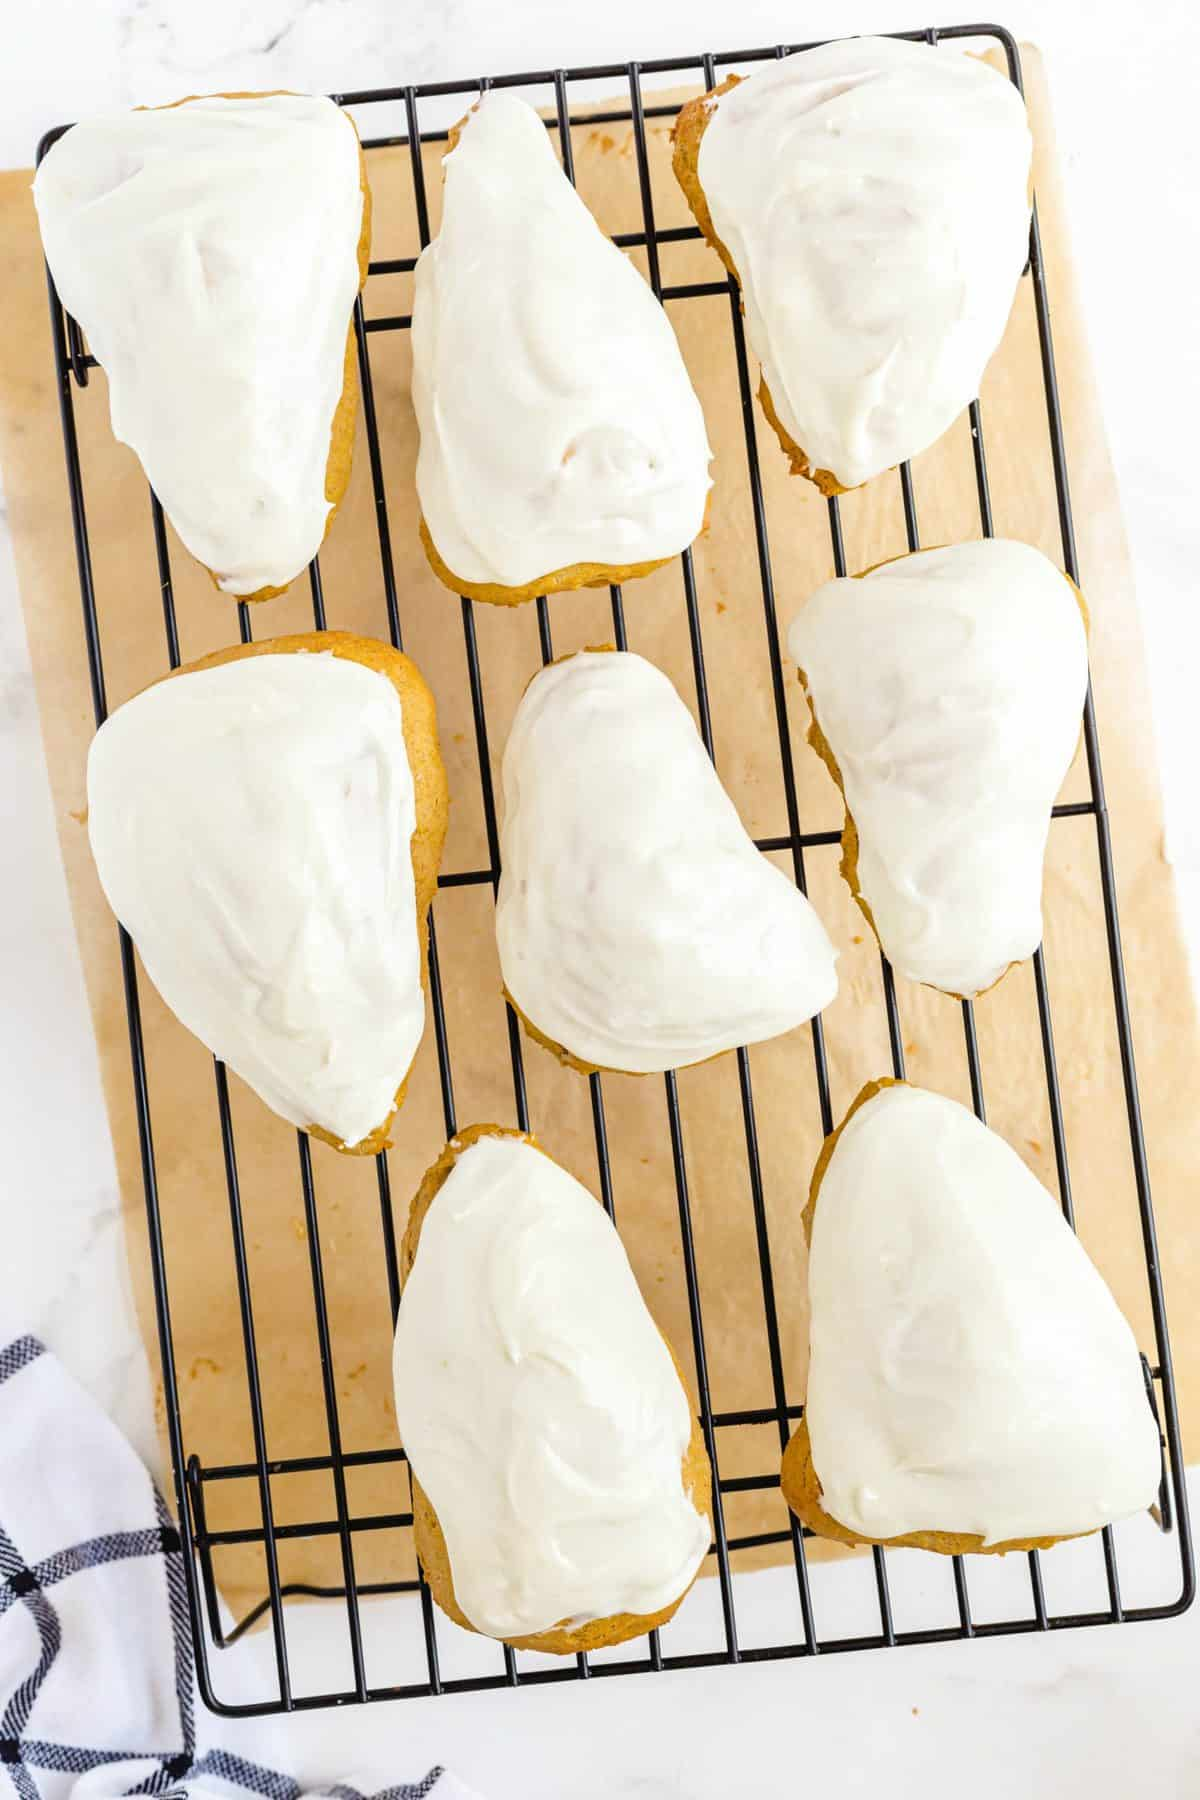 scones with frosting on a wire rack